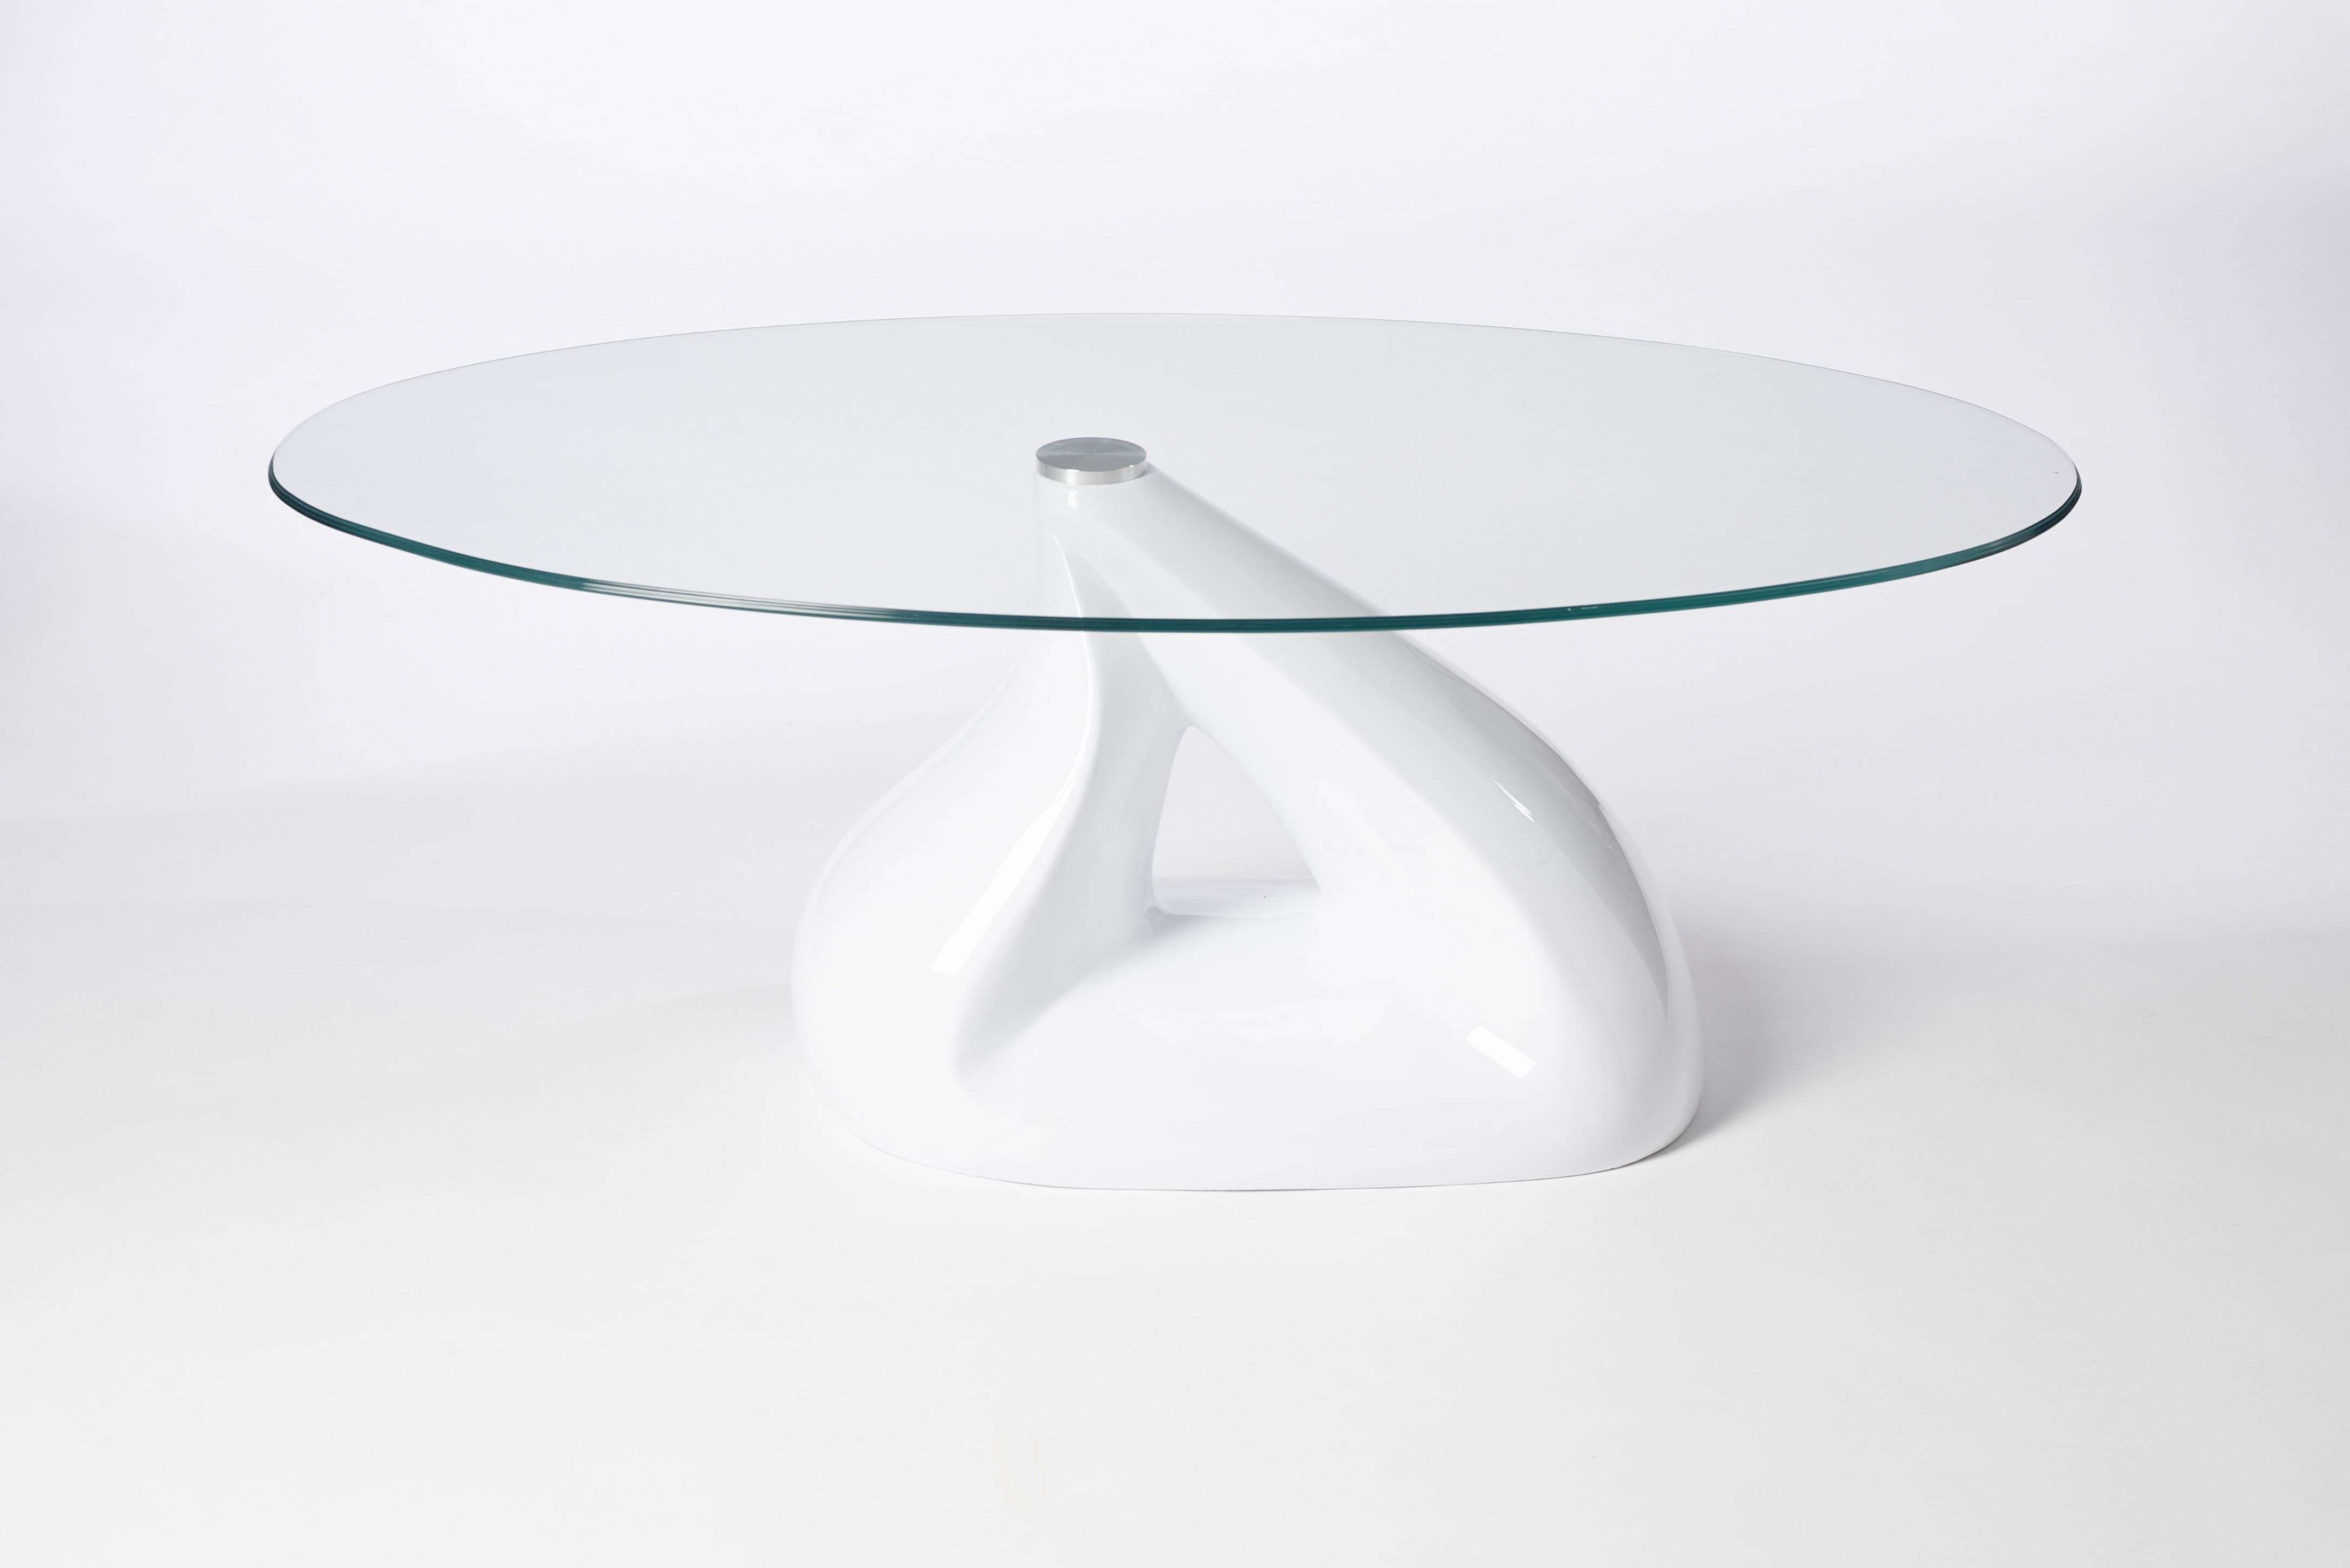 Coffee Tables : Small Glass Side Tables For Living Room For Most Up To Date Small Glass Coffee Tables (View 3 of 20)